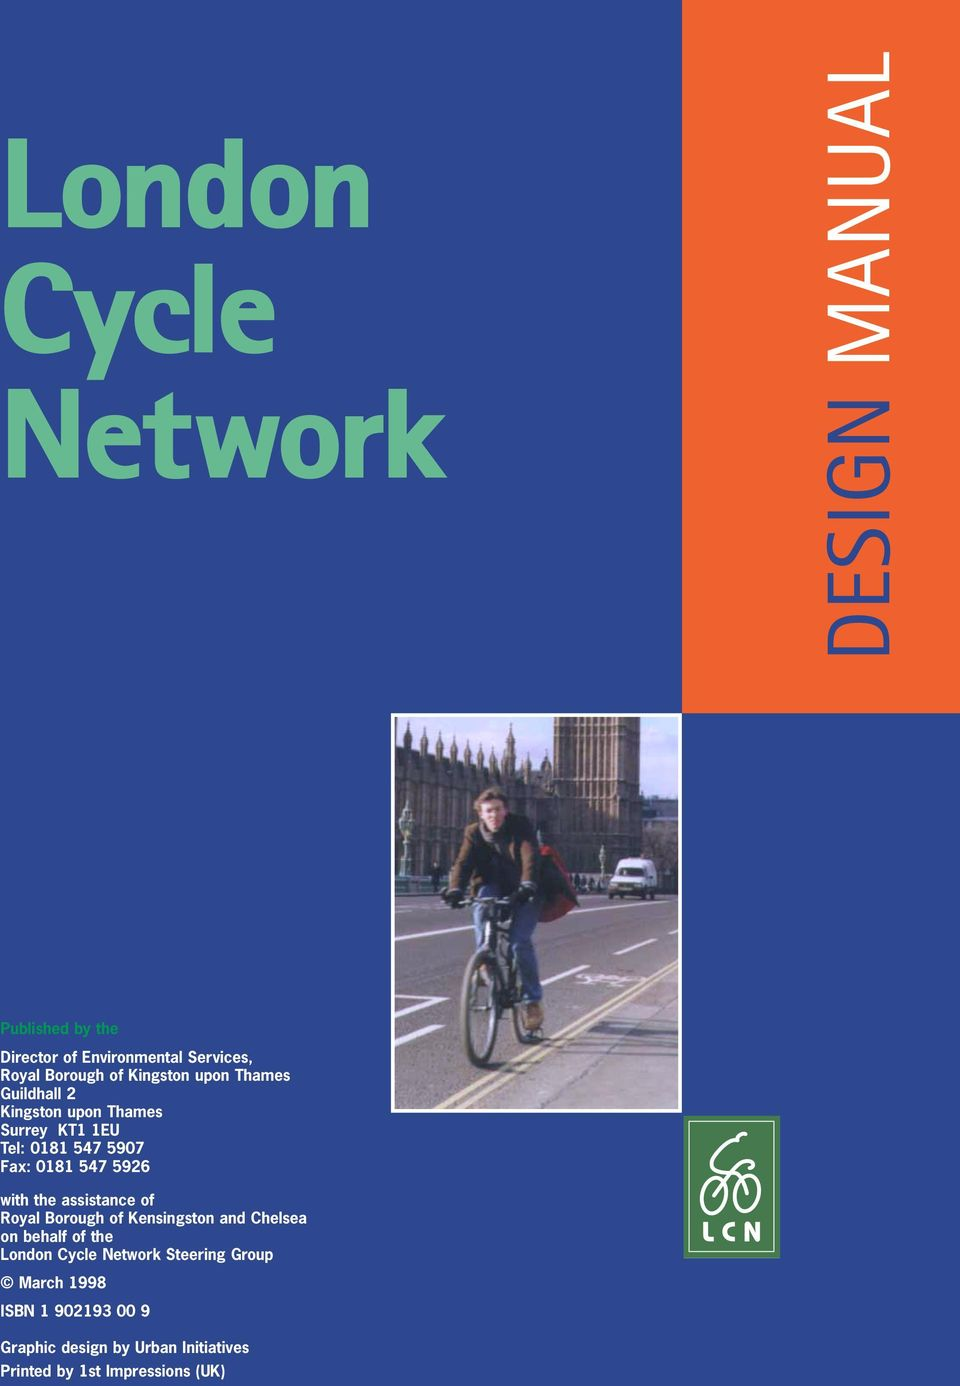 with the assistance of Royal Borough of Kensingston and Chelsea on behalf of the London Cycle Network